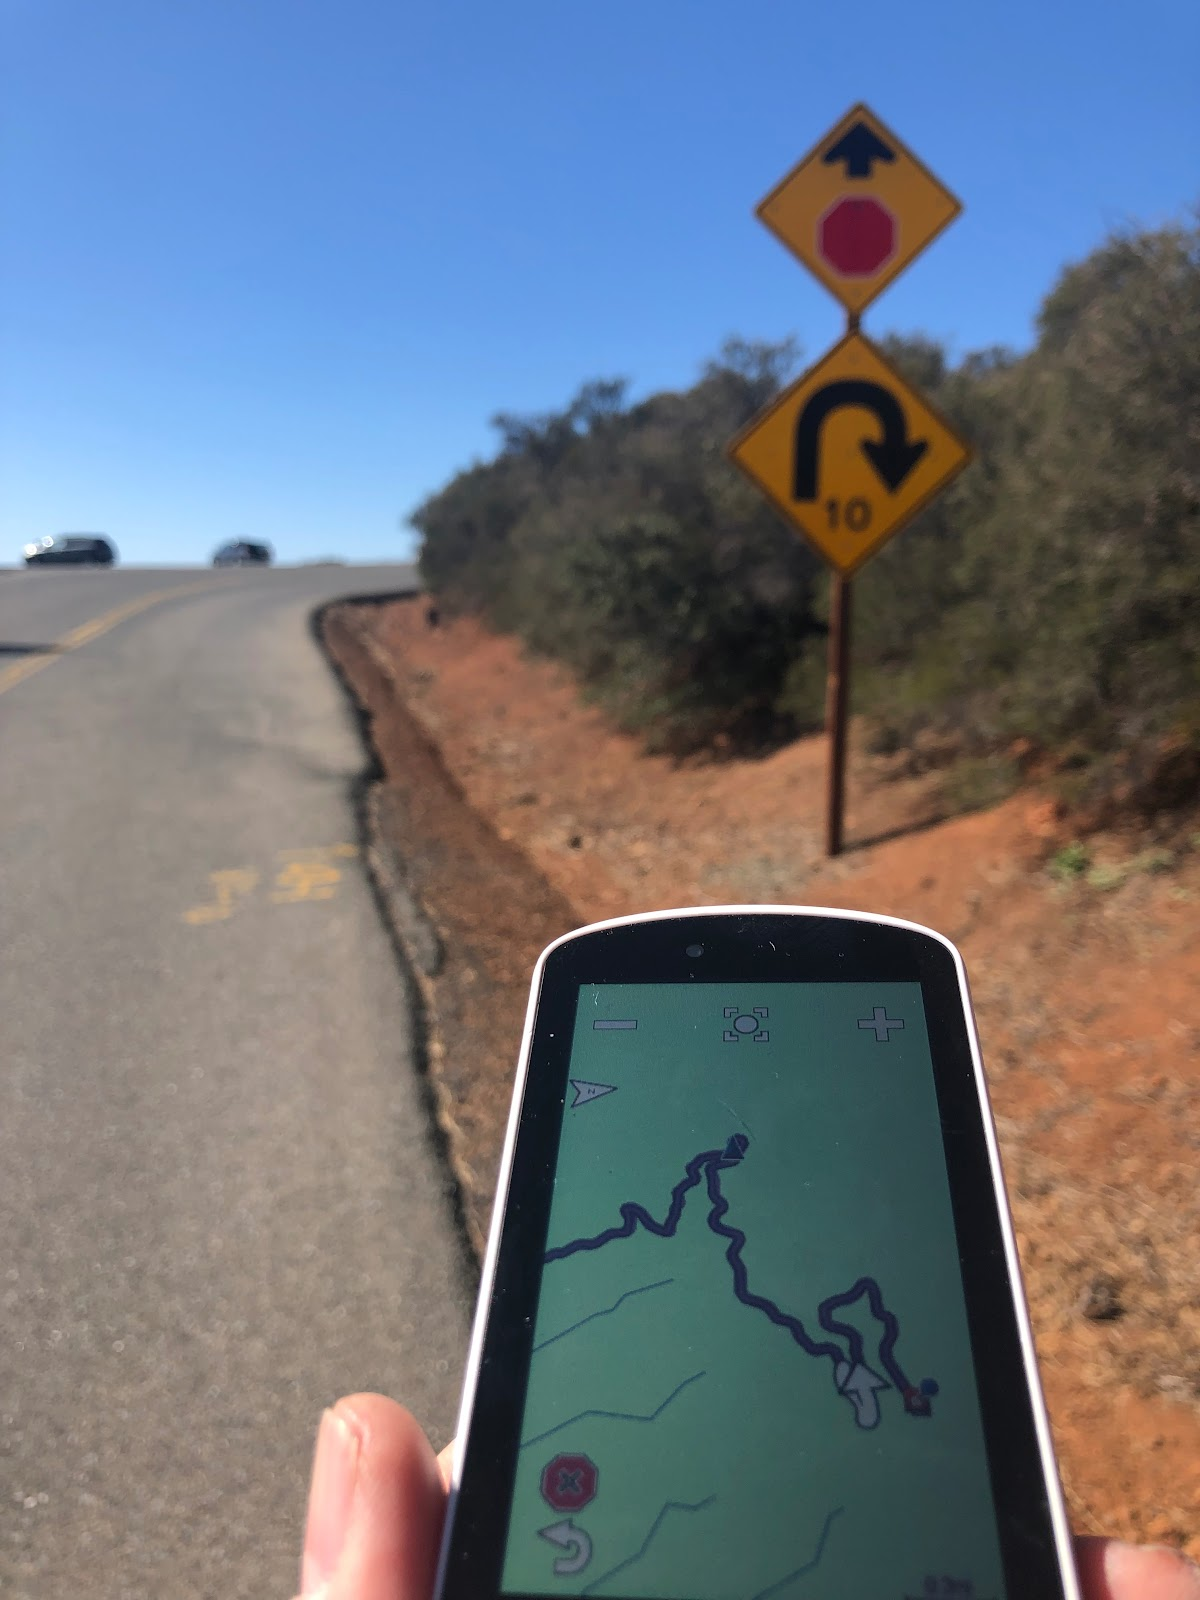 Cycling Mt. Diablo - Summit Road - road sign for curve - garmin map with hairpins